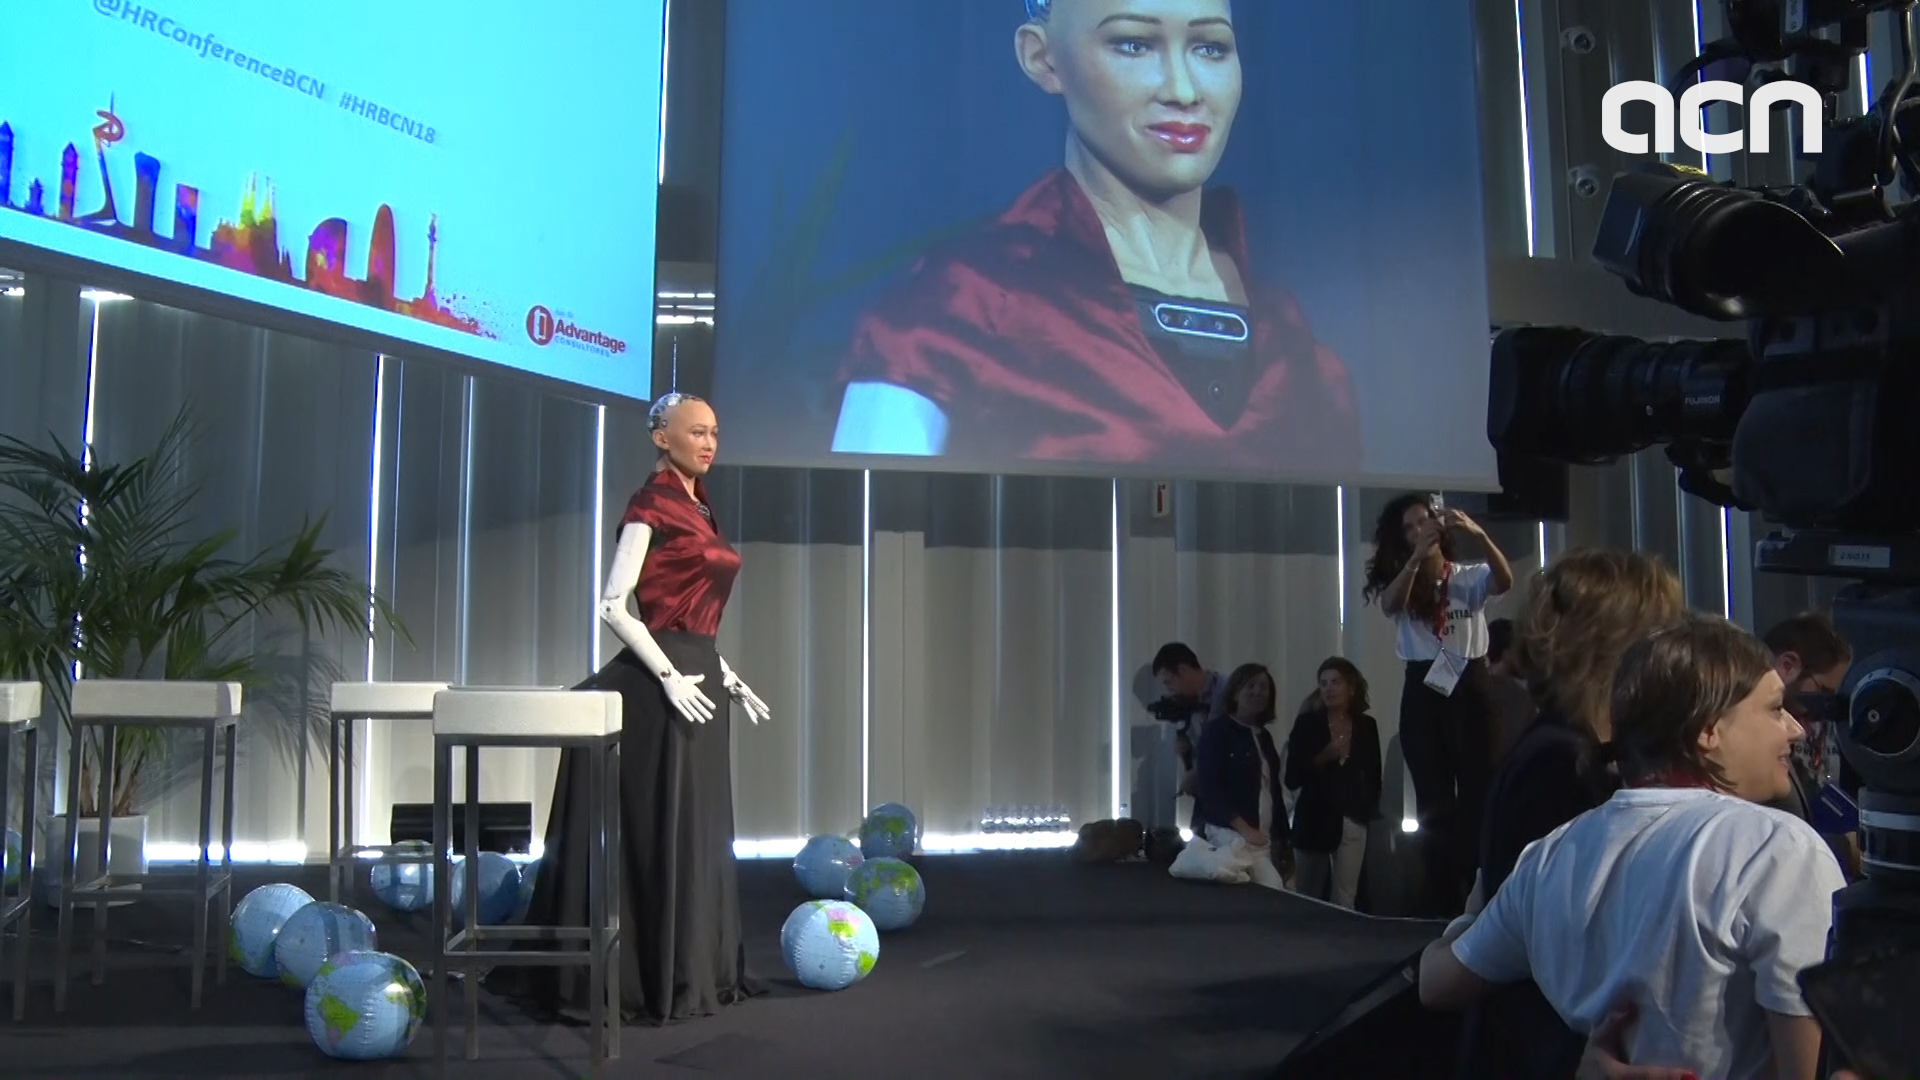 Sophia The Humanoid Robot Visits Barcelona For First Time